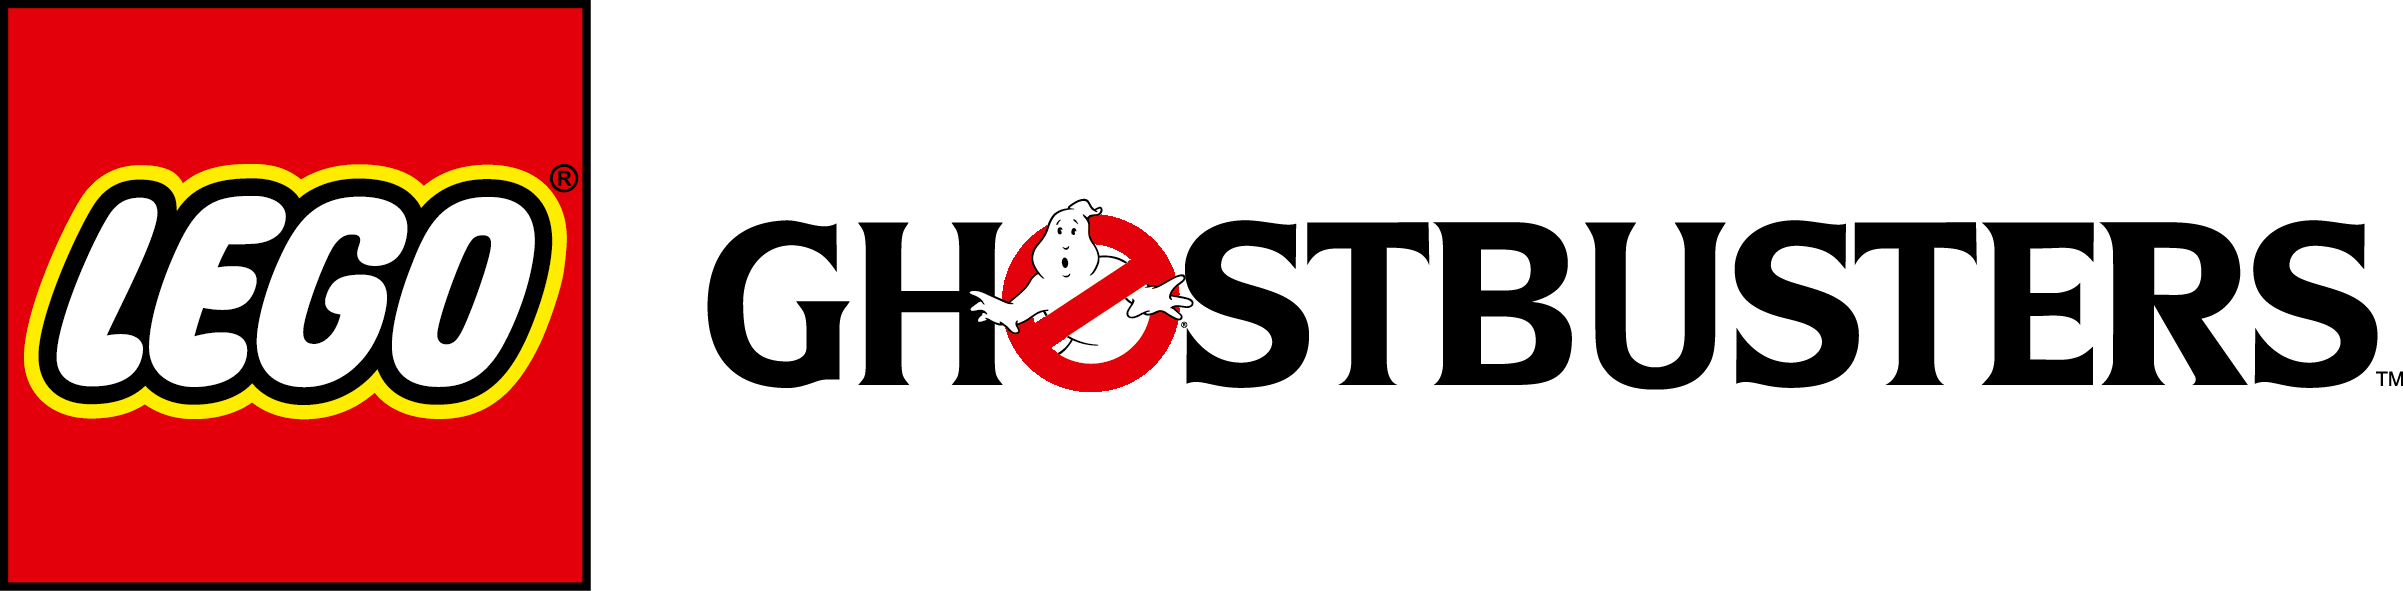 lego ghostbusters png logo